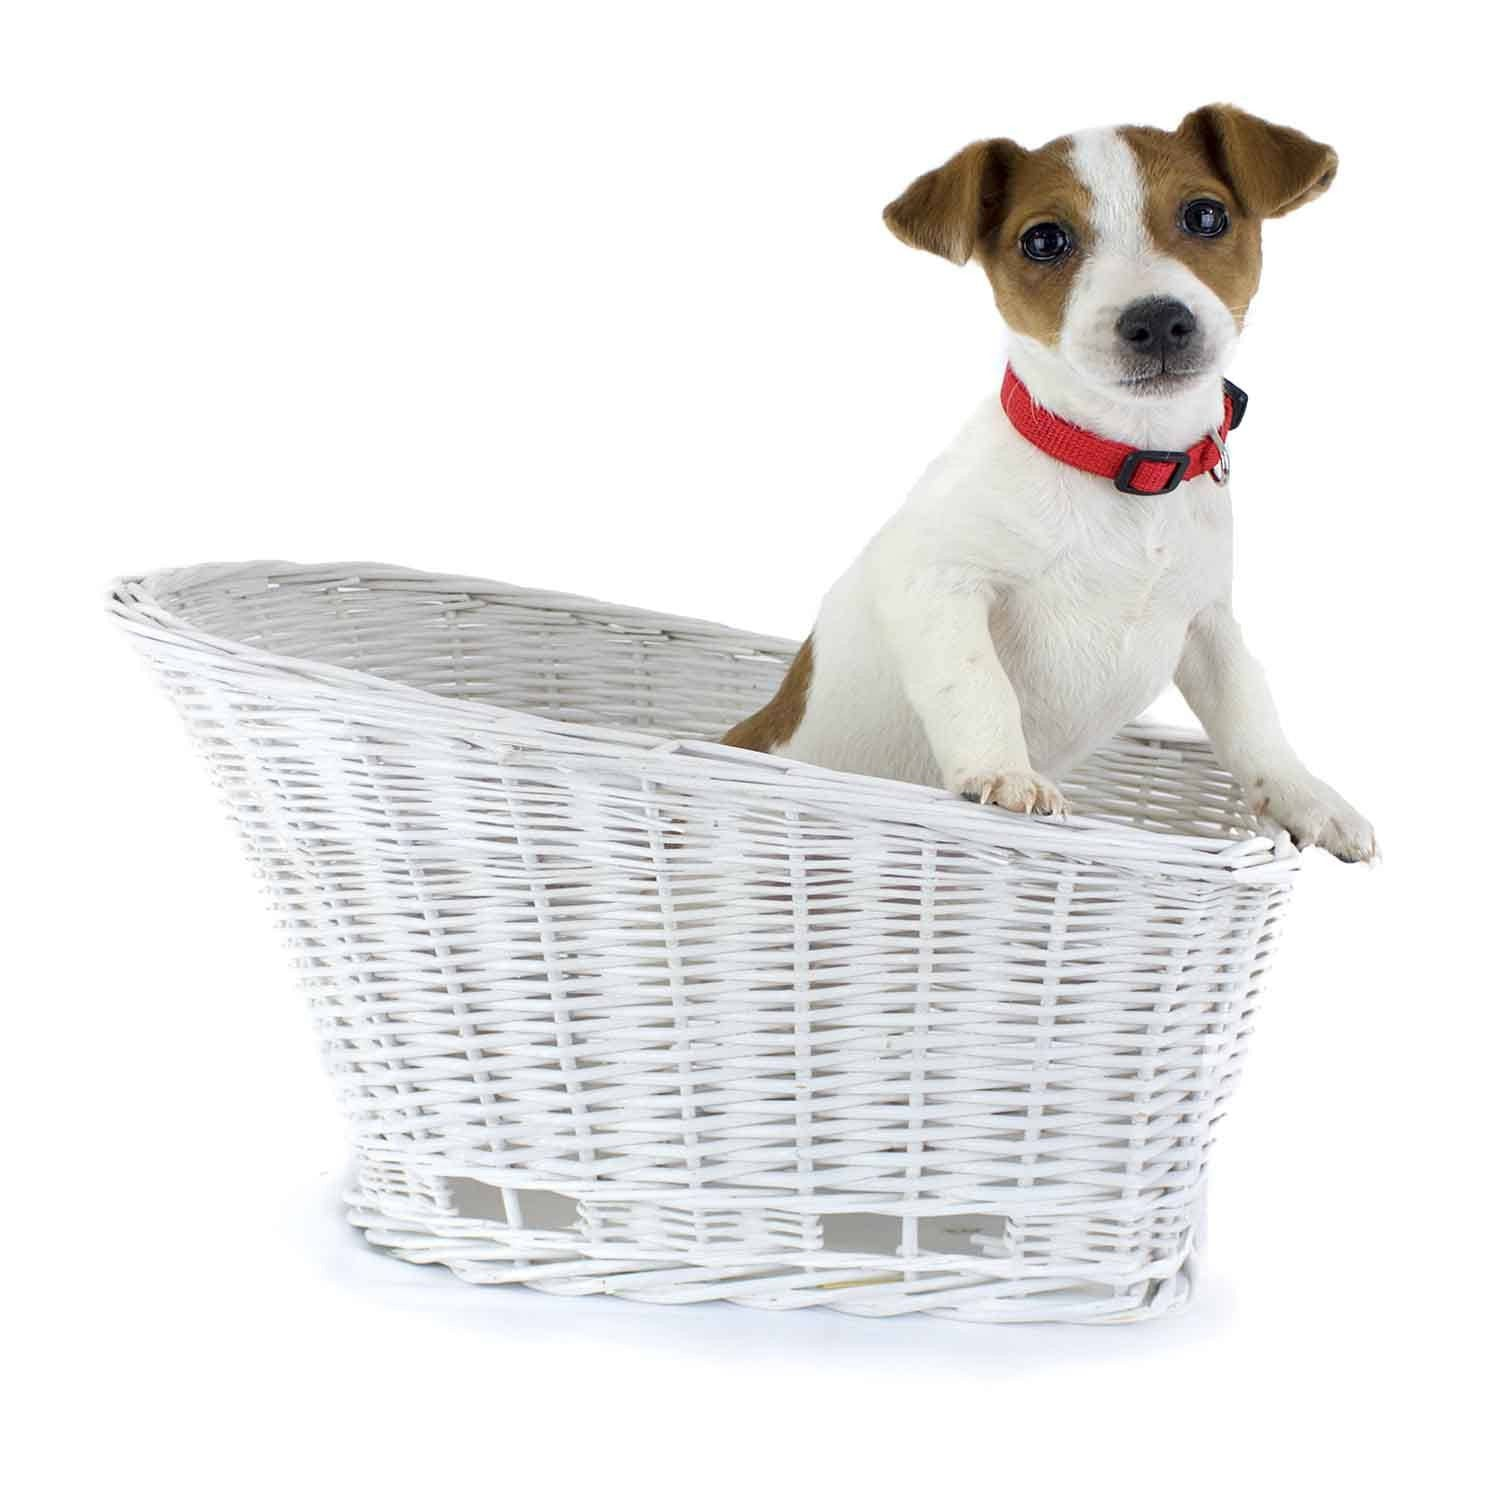 Cape May rear mount bicycle basket - hand made willow for dogs (white)